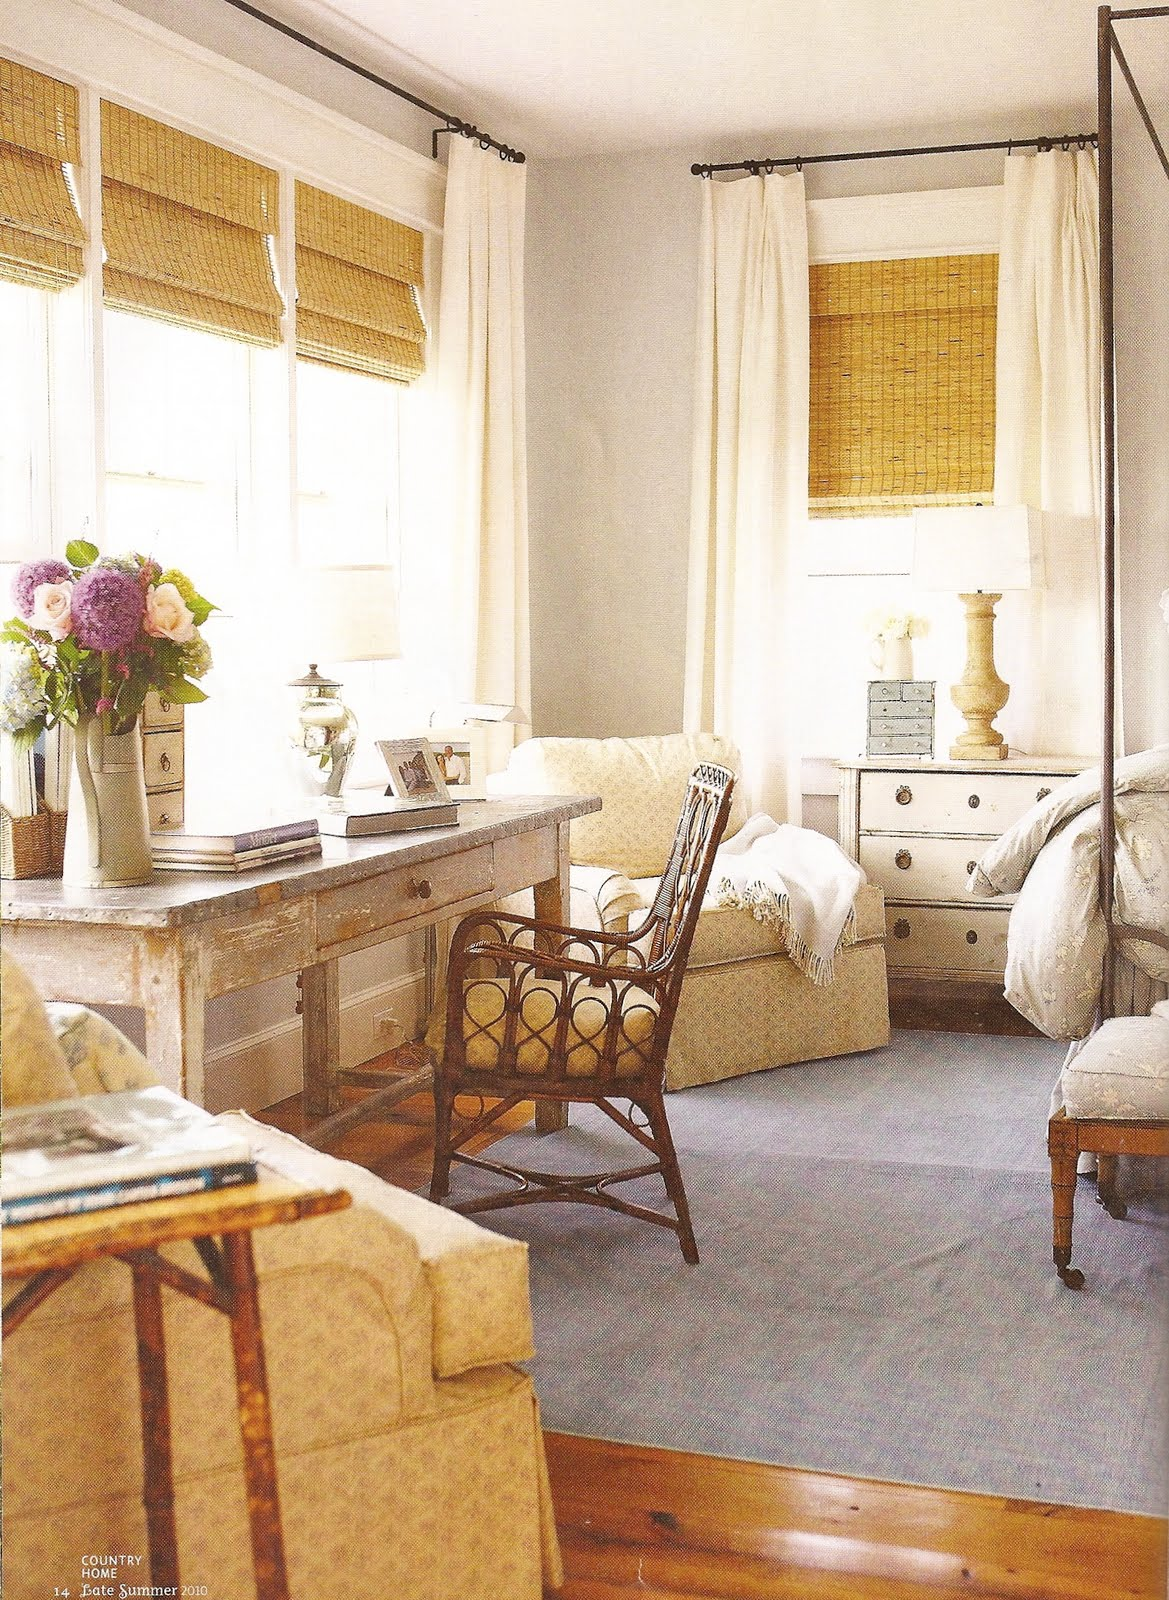 Décor de provence: needing a little nantucket style?